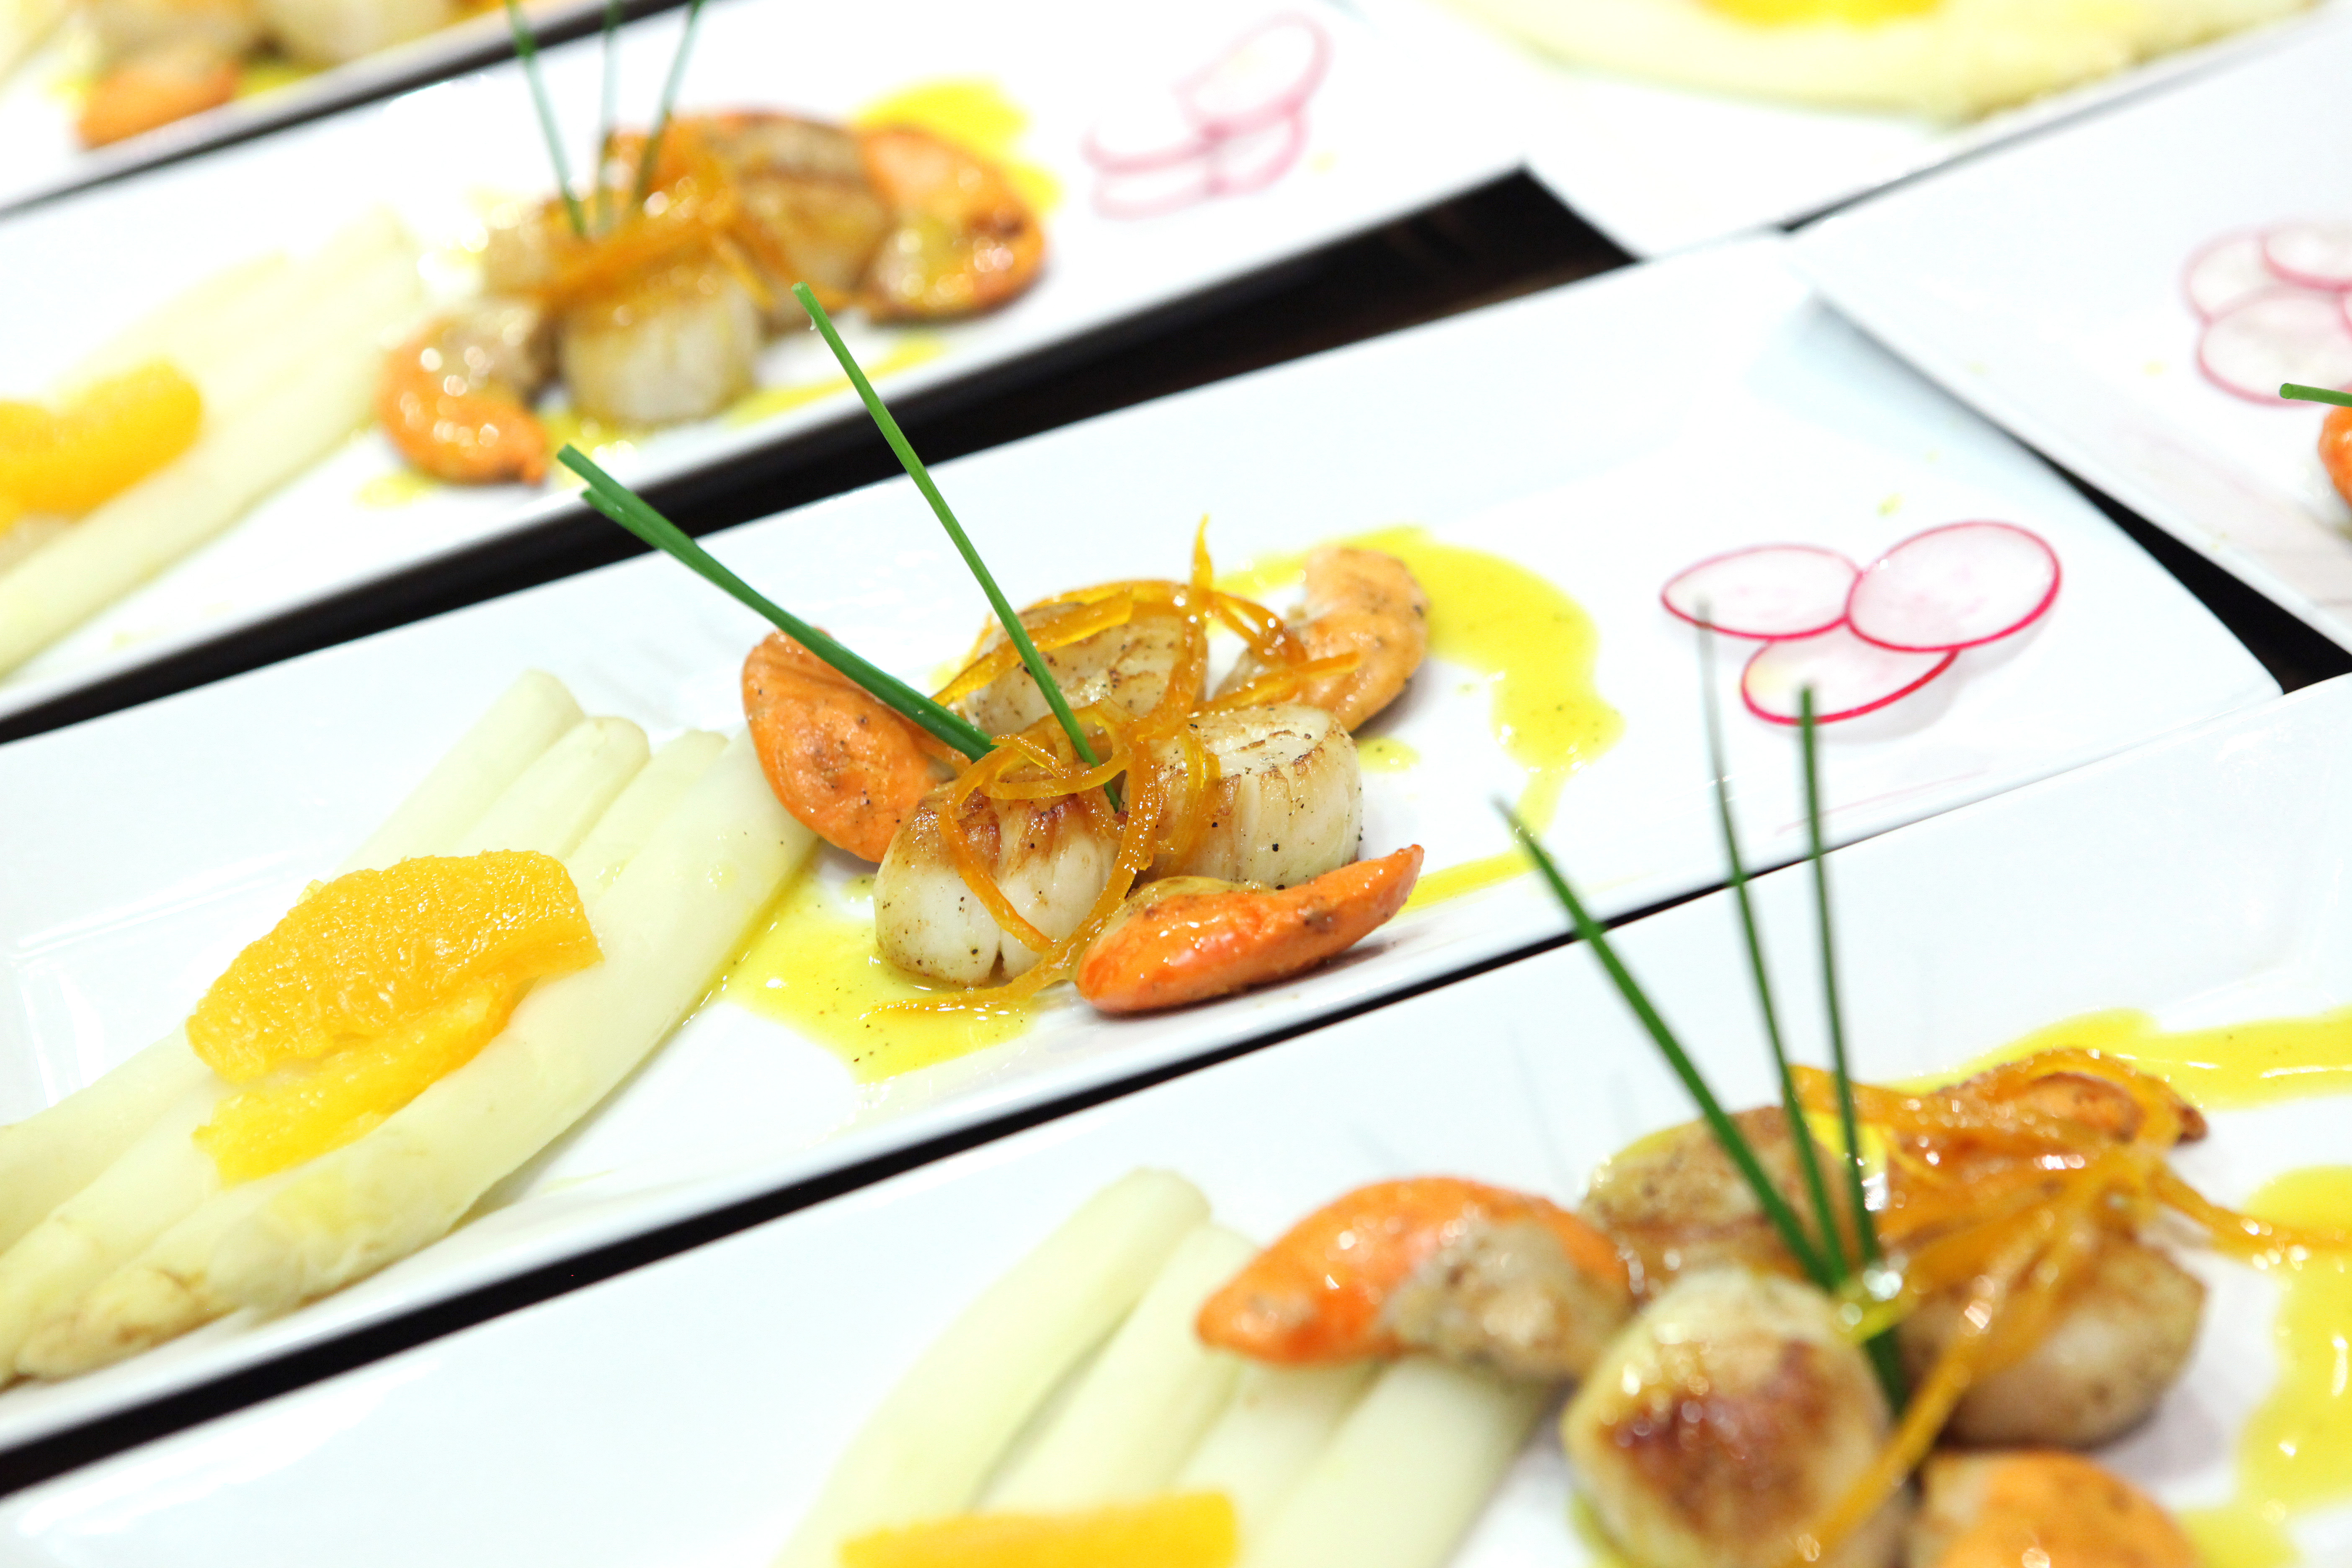 Scallops in orange butter sauce with candied citrus zest and white asparagus. Photo: Vincent Bourdon